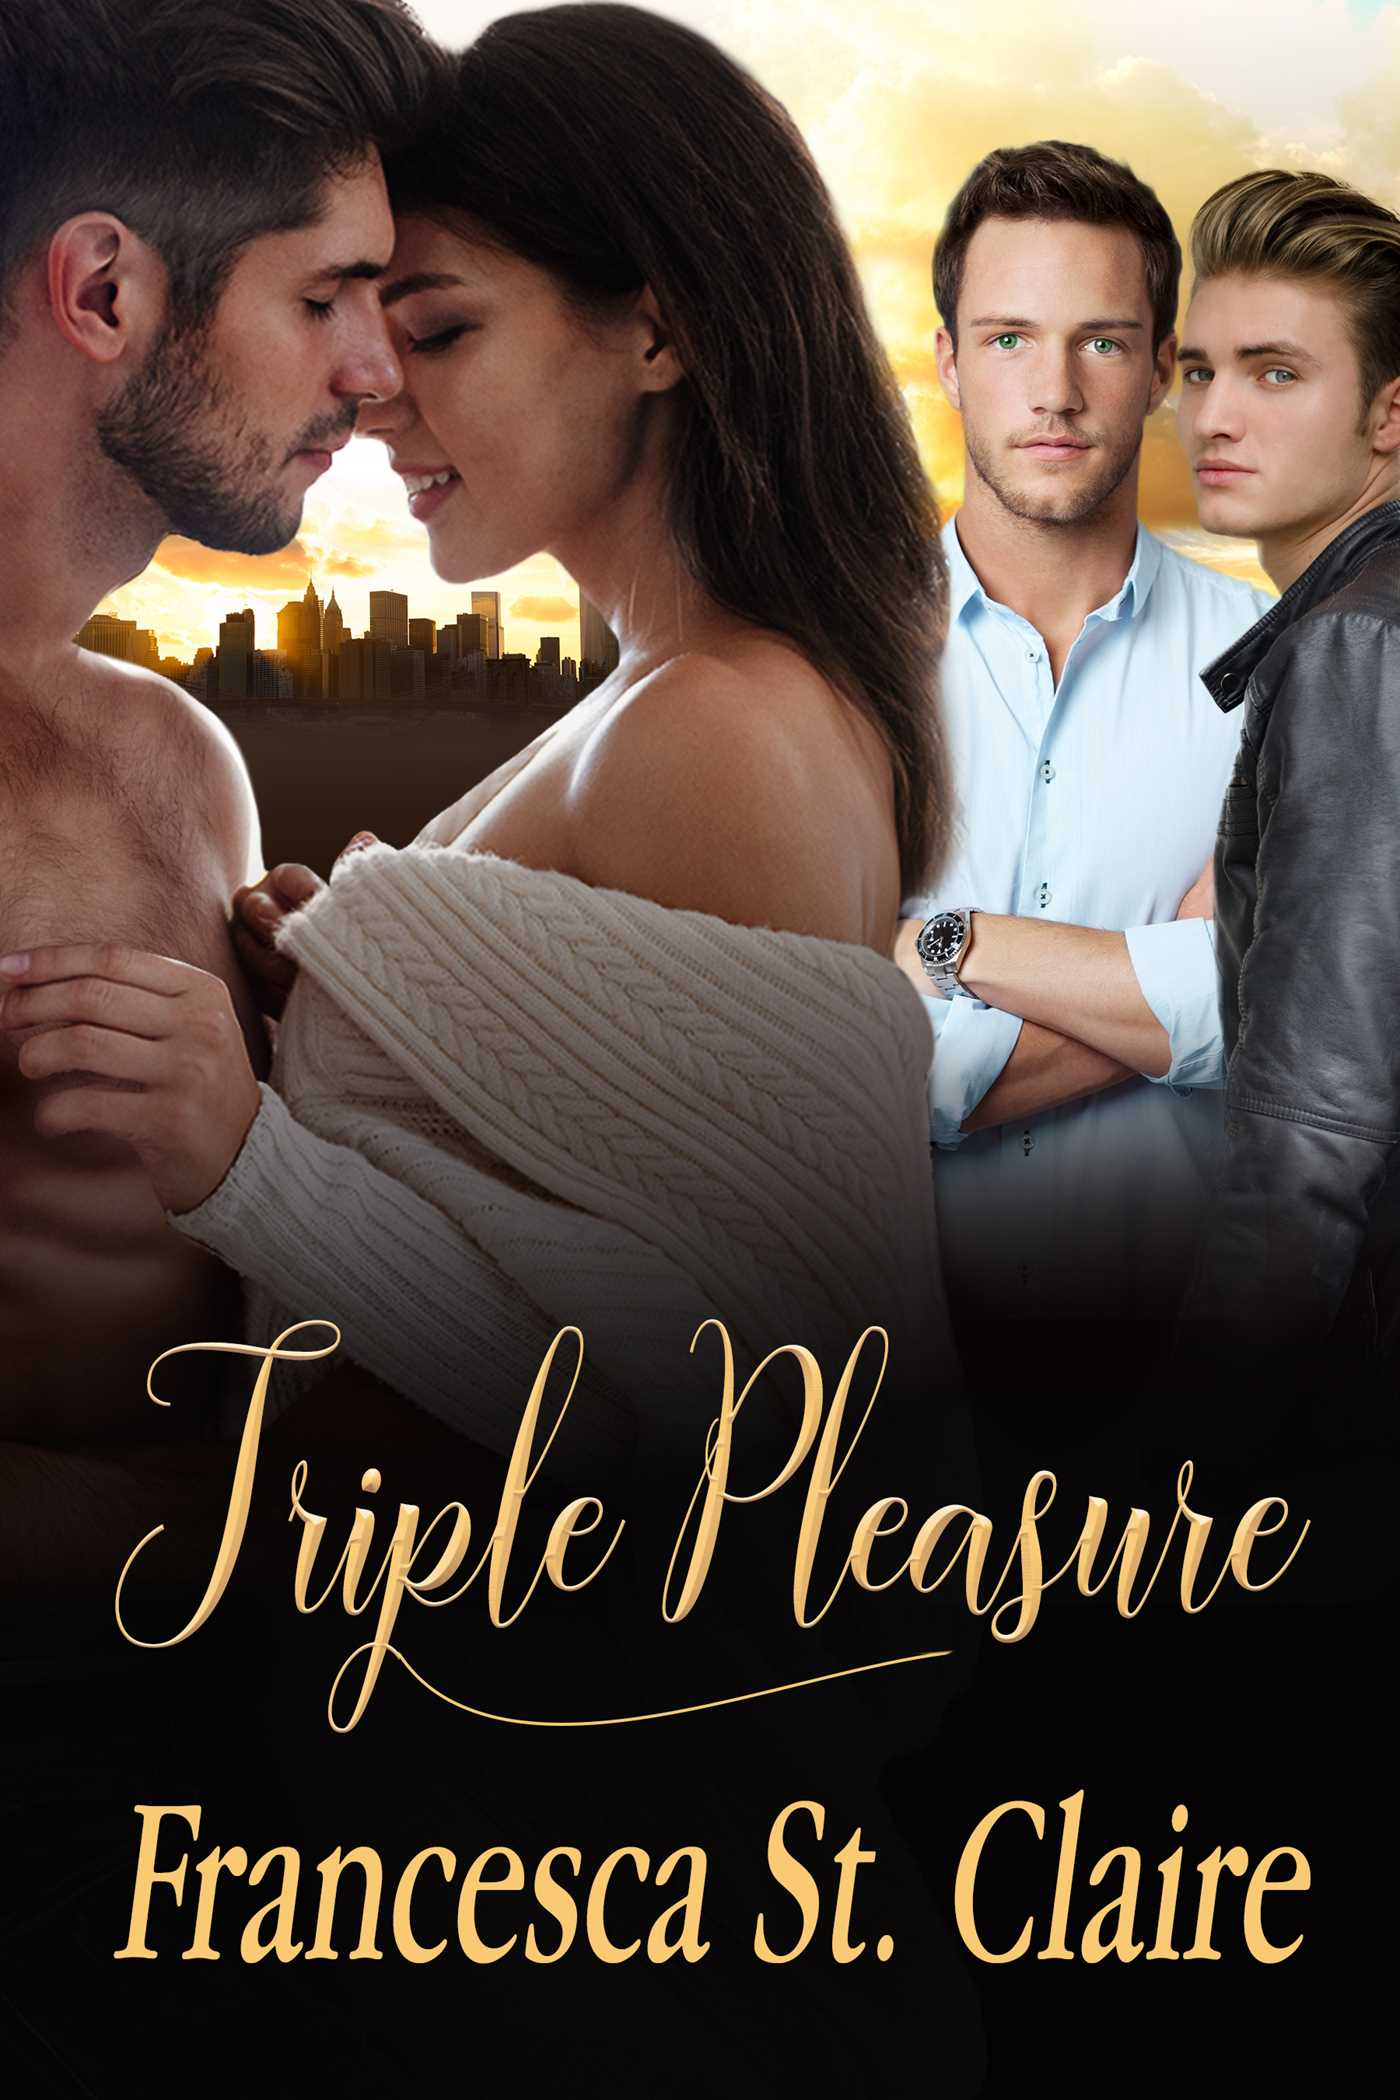 Triple pleasure 9781682992746 hr